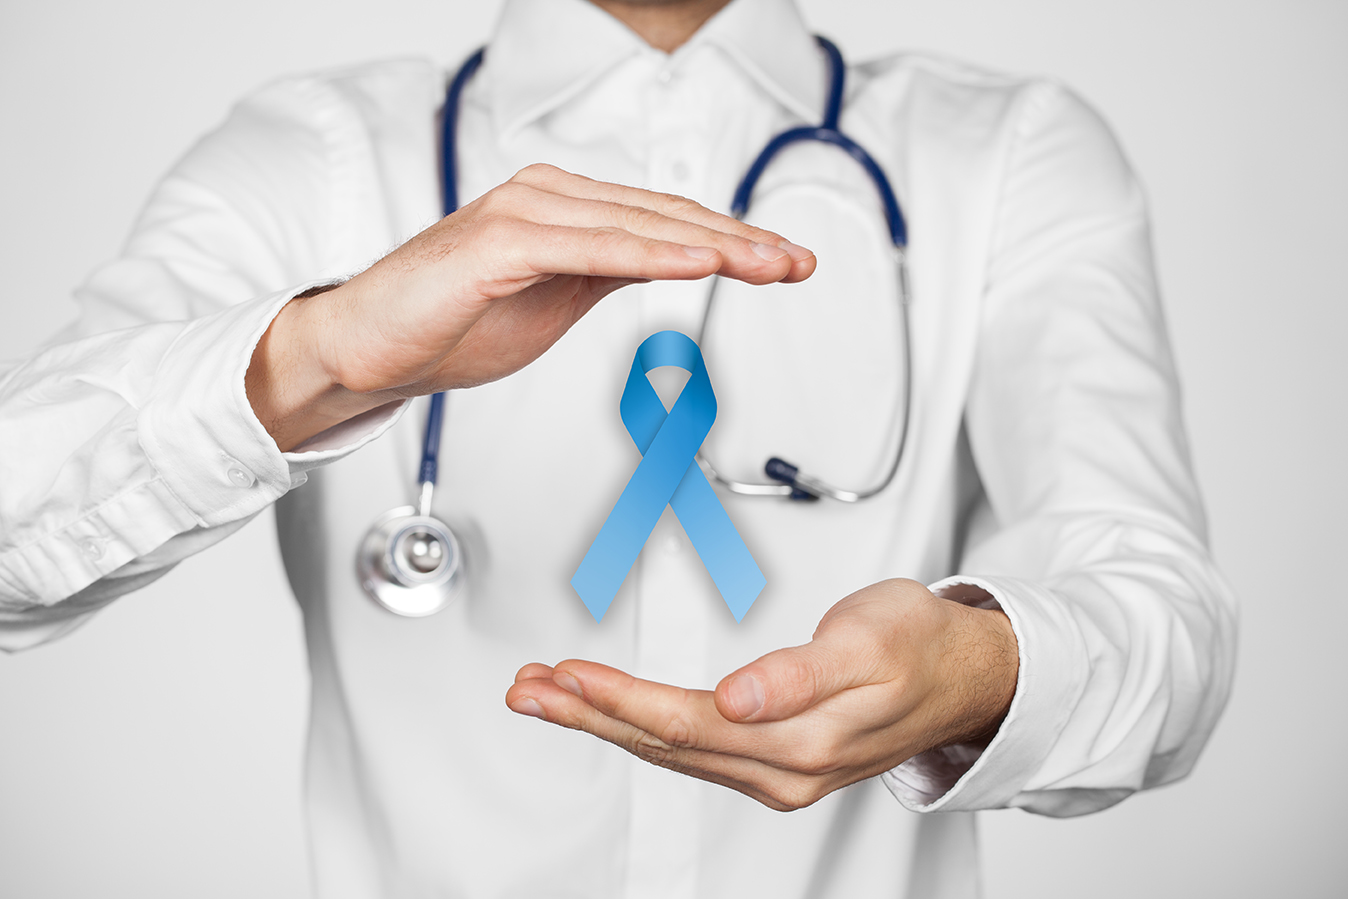 Prostate cancer prevention and genetic disorder awareness - doctor (general practitioner) with protective and support gesture and blue ribbon.